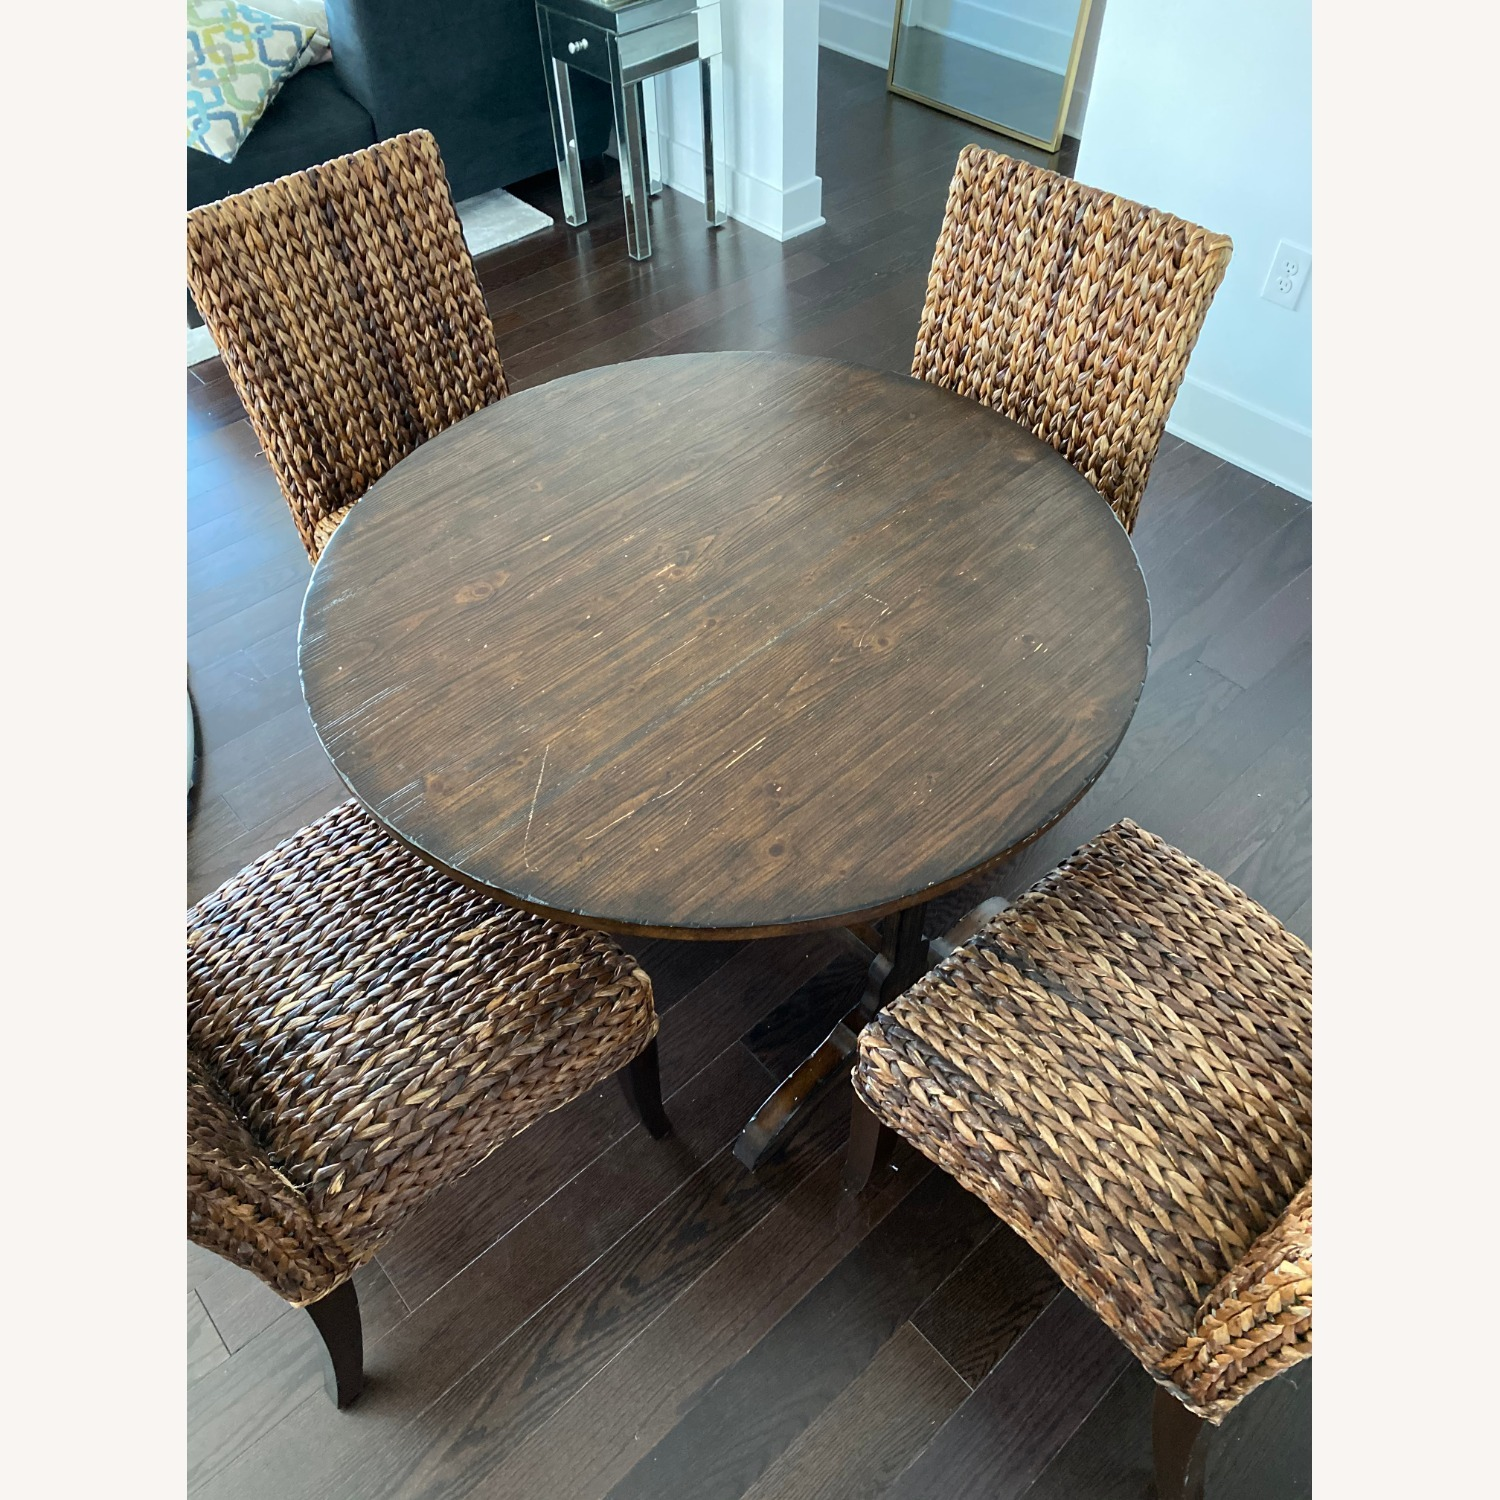 Pottery Barn Dining Table and Seagrass Chair Set - image-1